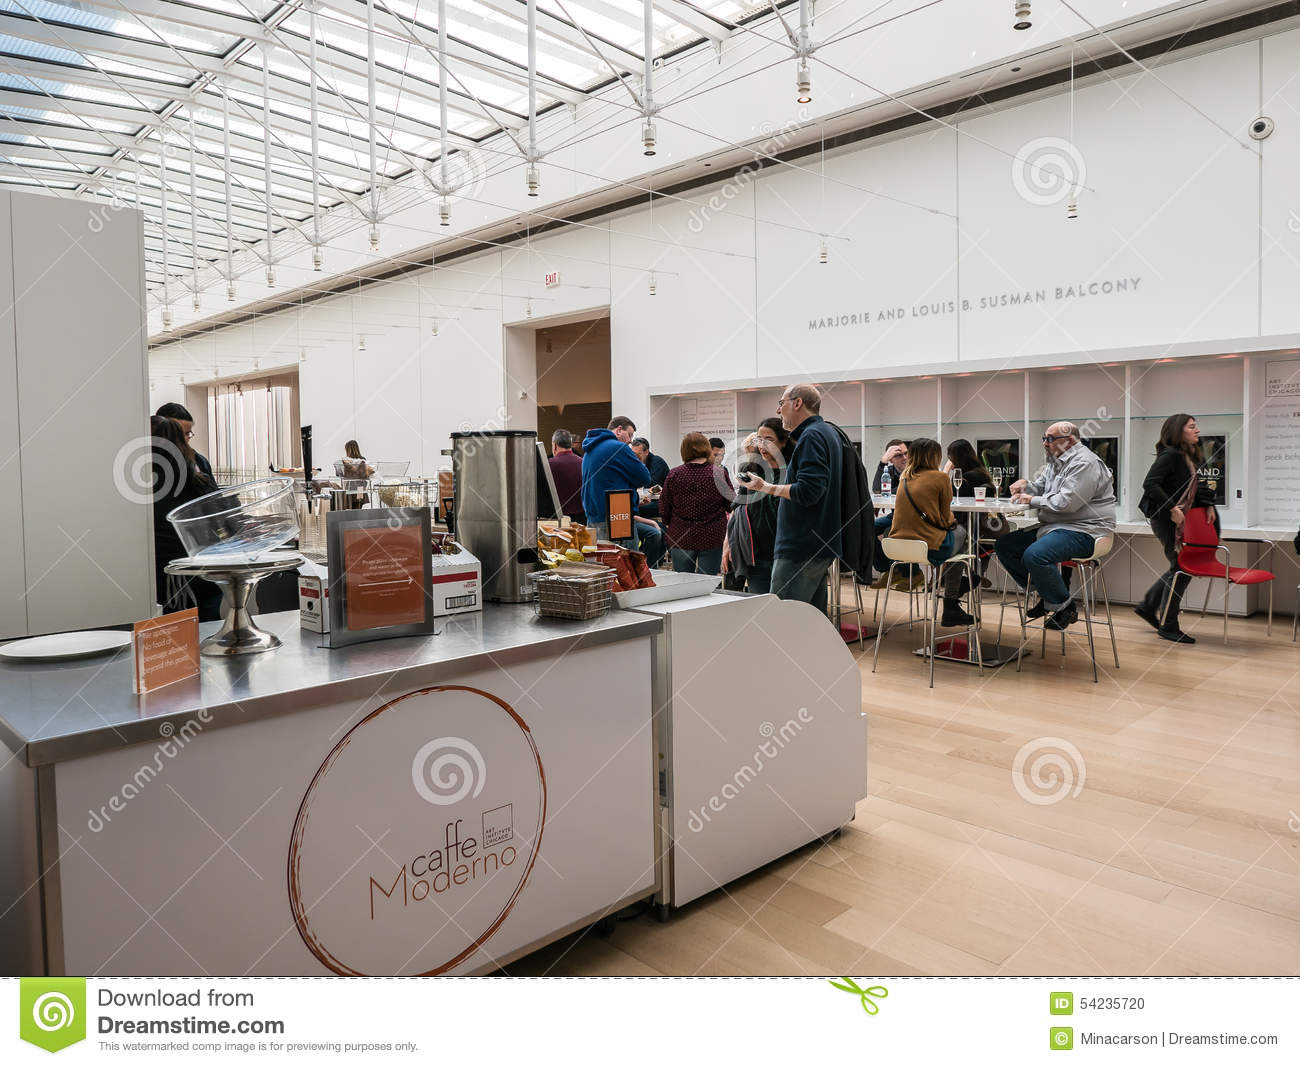 visitors at caffe moderno art institute of chicago editorial image